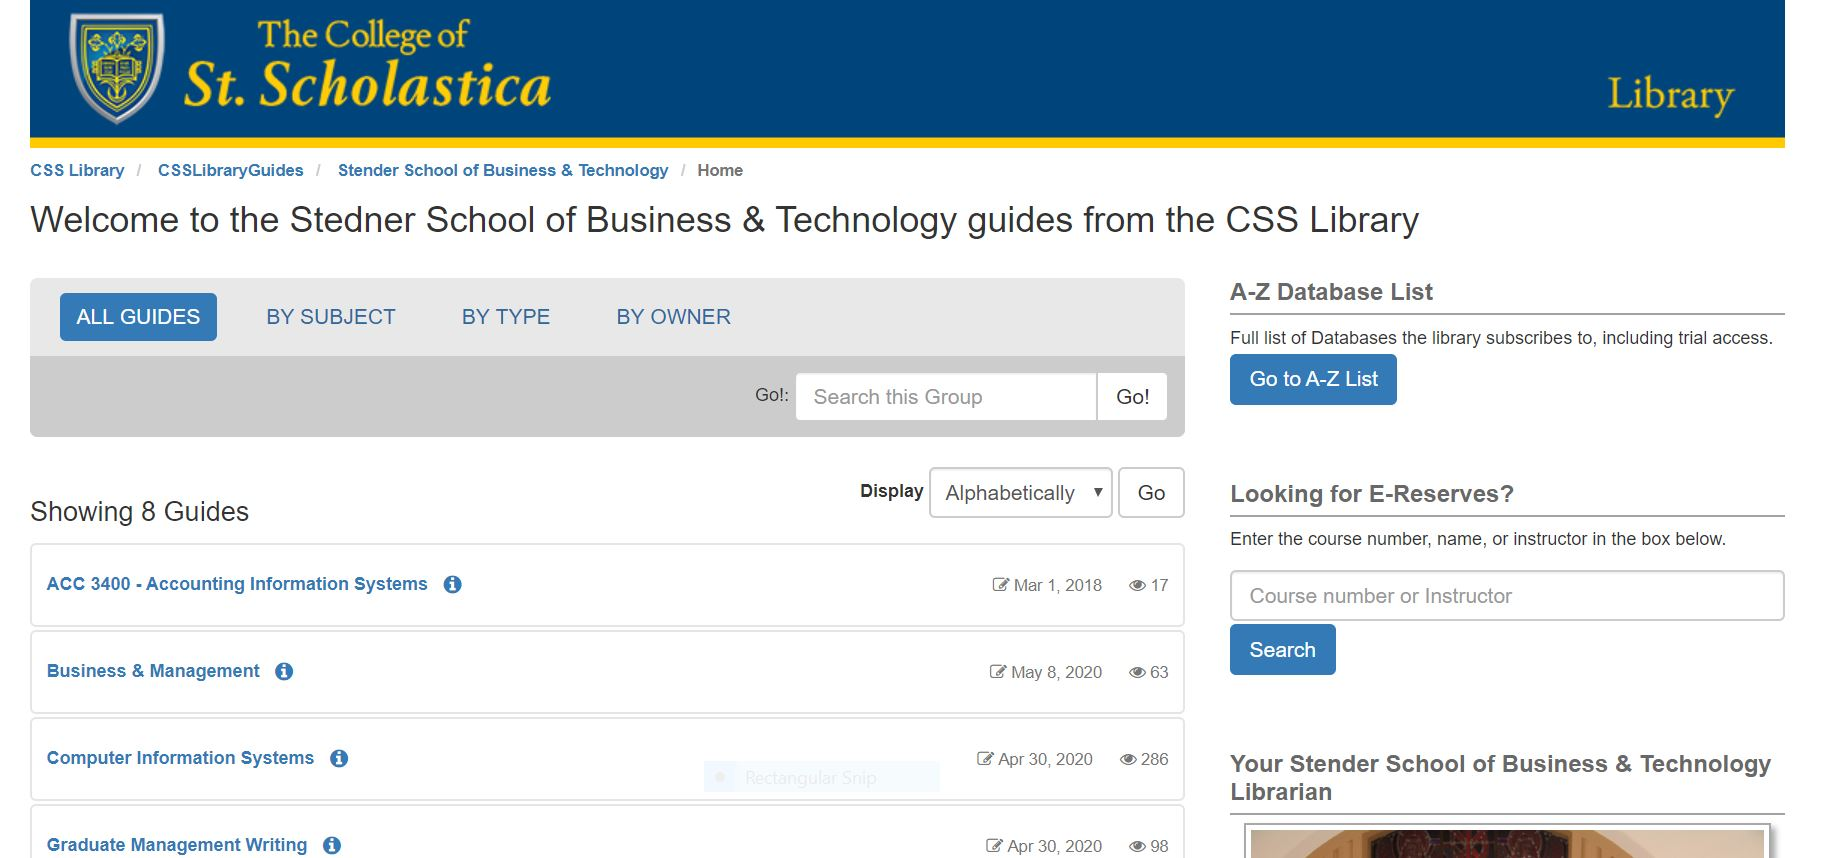 Screen shot of Stedner School of Business & Technology page